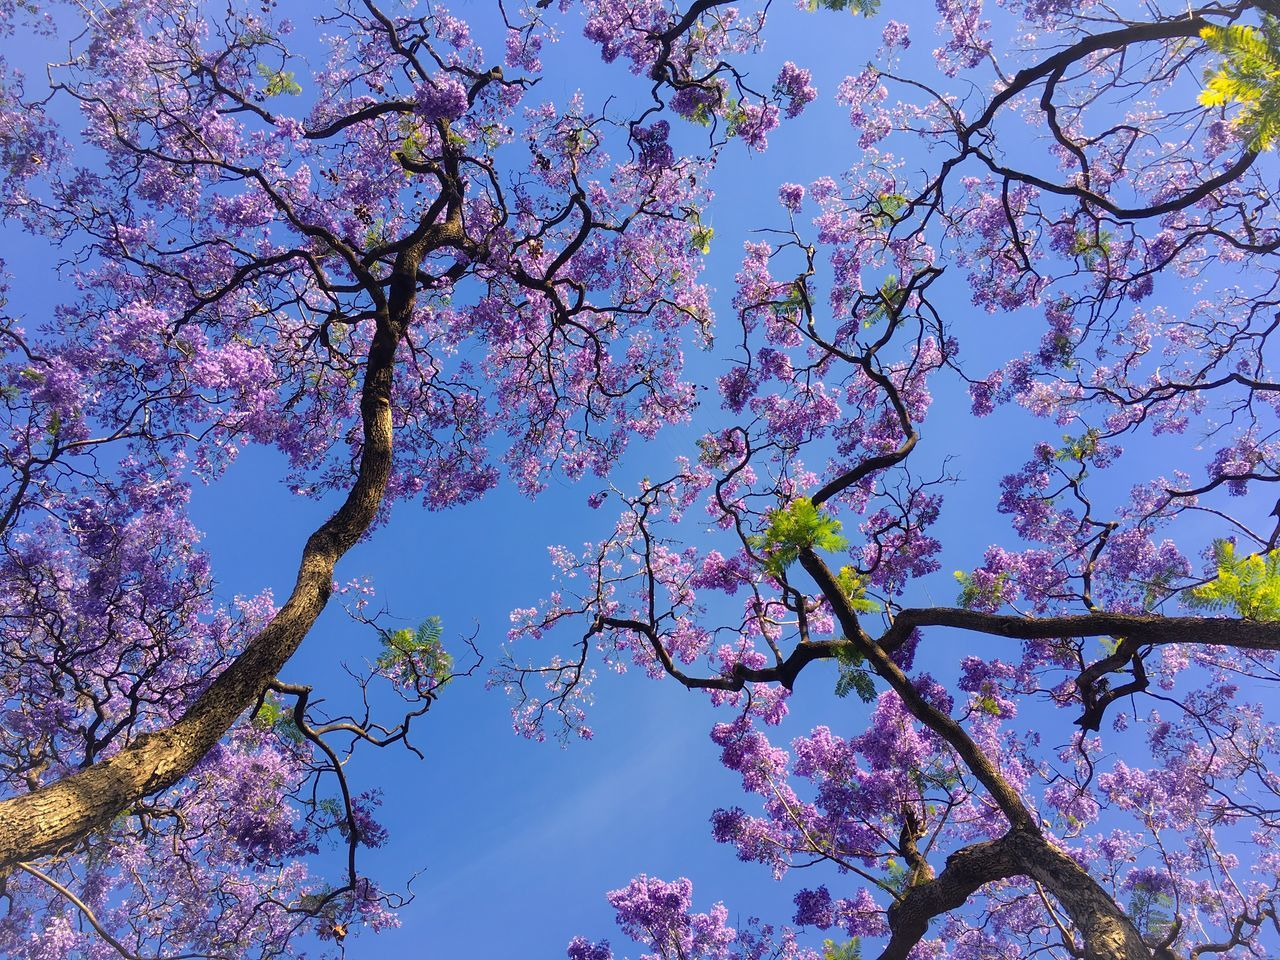 Pink Flowers Trees And Sky Tree Branches Blue Sky Tree Low Angle View Branch Growth Nature Sky Beauty In Nature No People Outdoors Flower Springtime Blossom Clear Sky Day Freshness Fragility